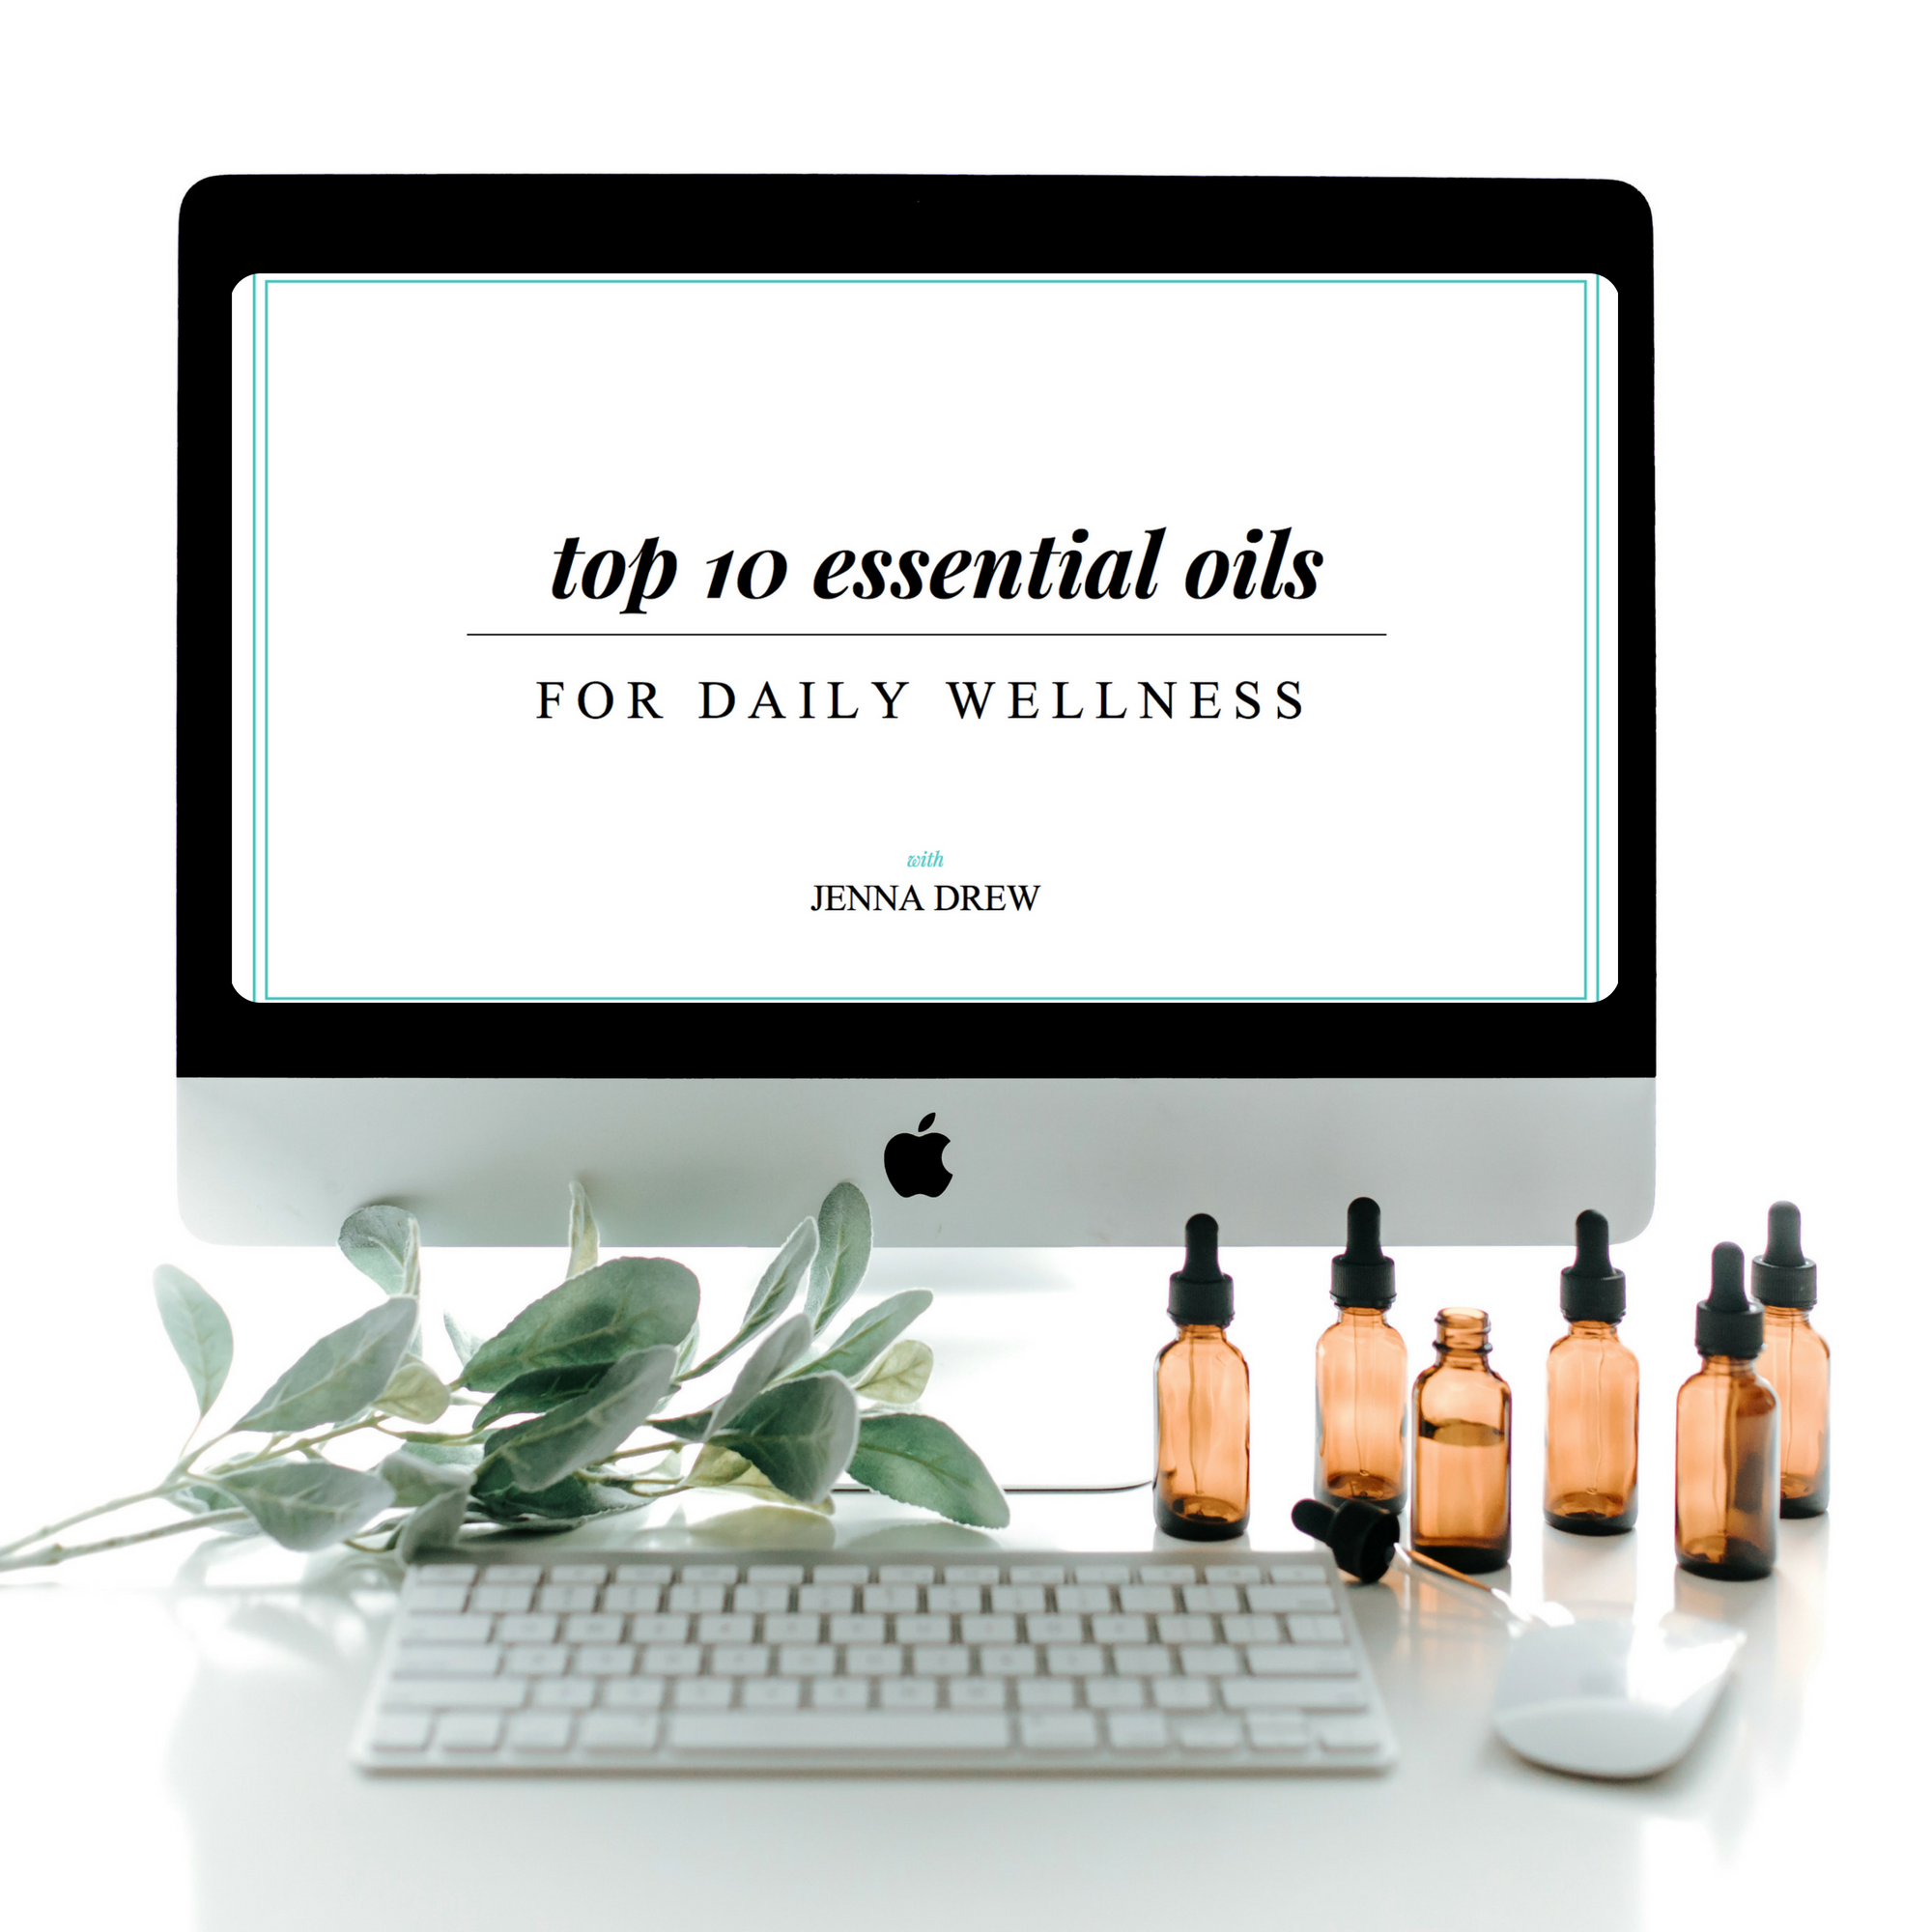 oils-homepage-image.png